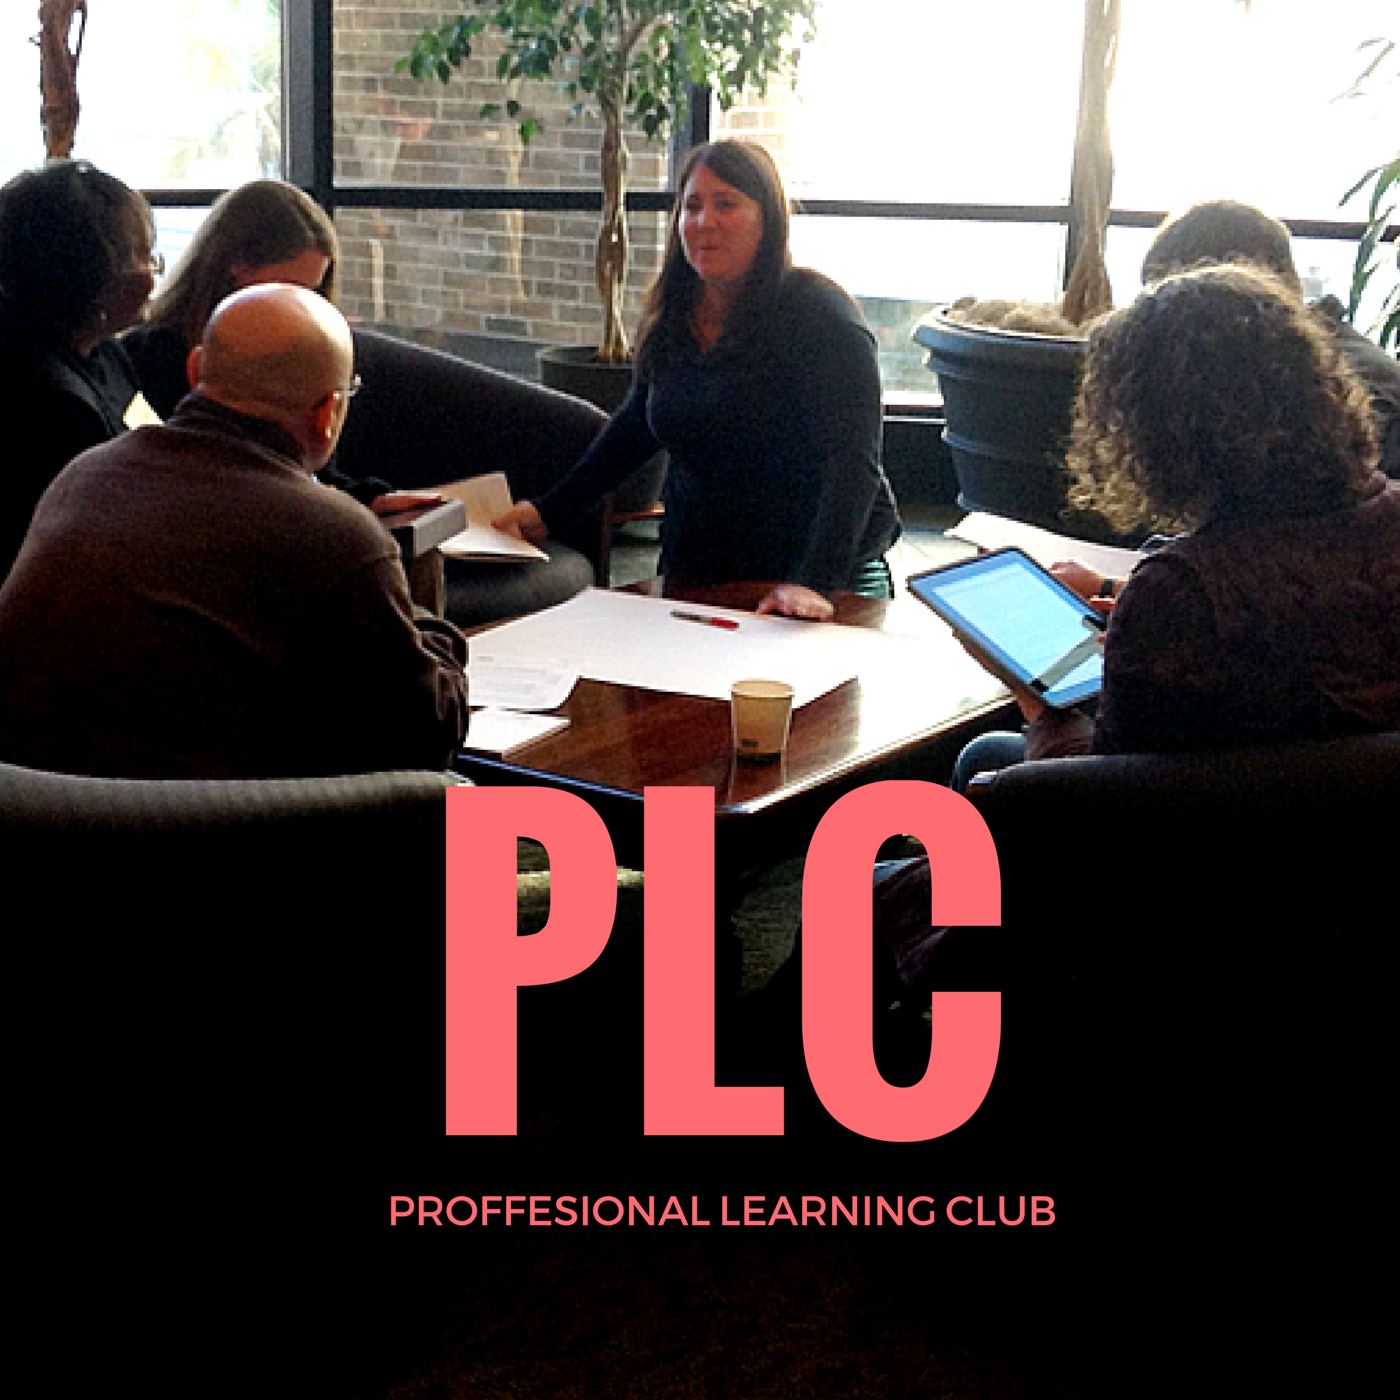 Join a Professional Learning Club for the next academic year